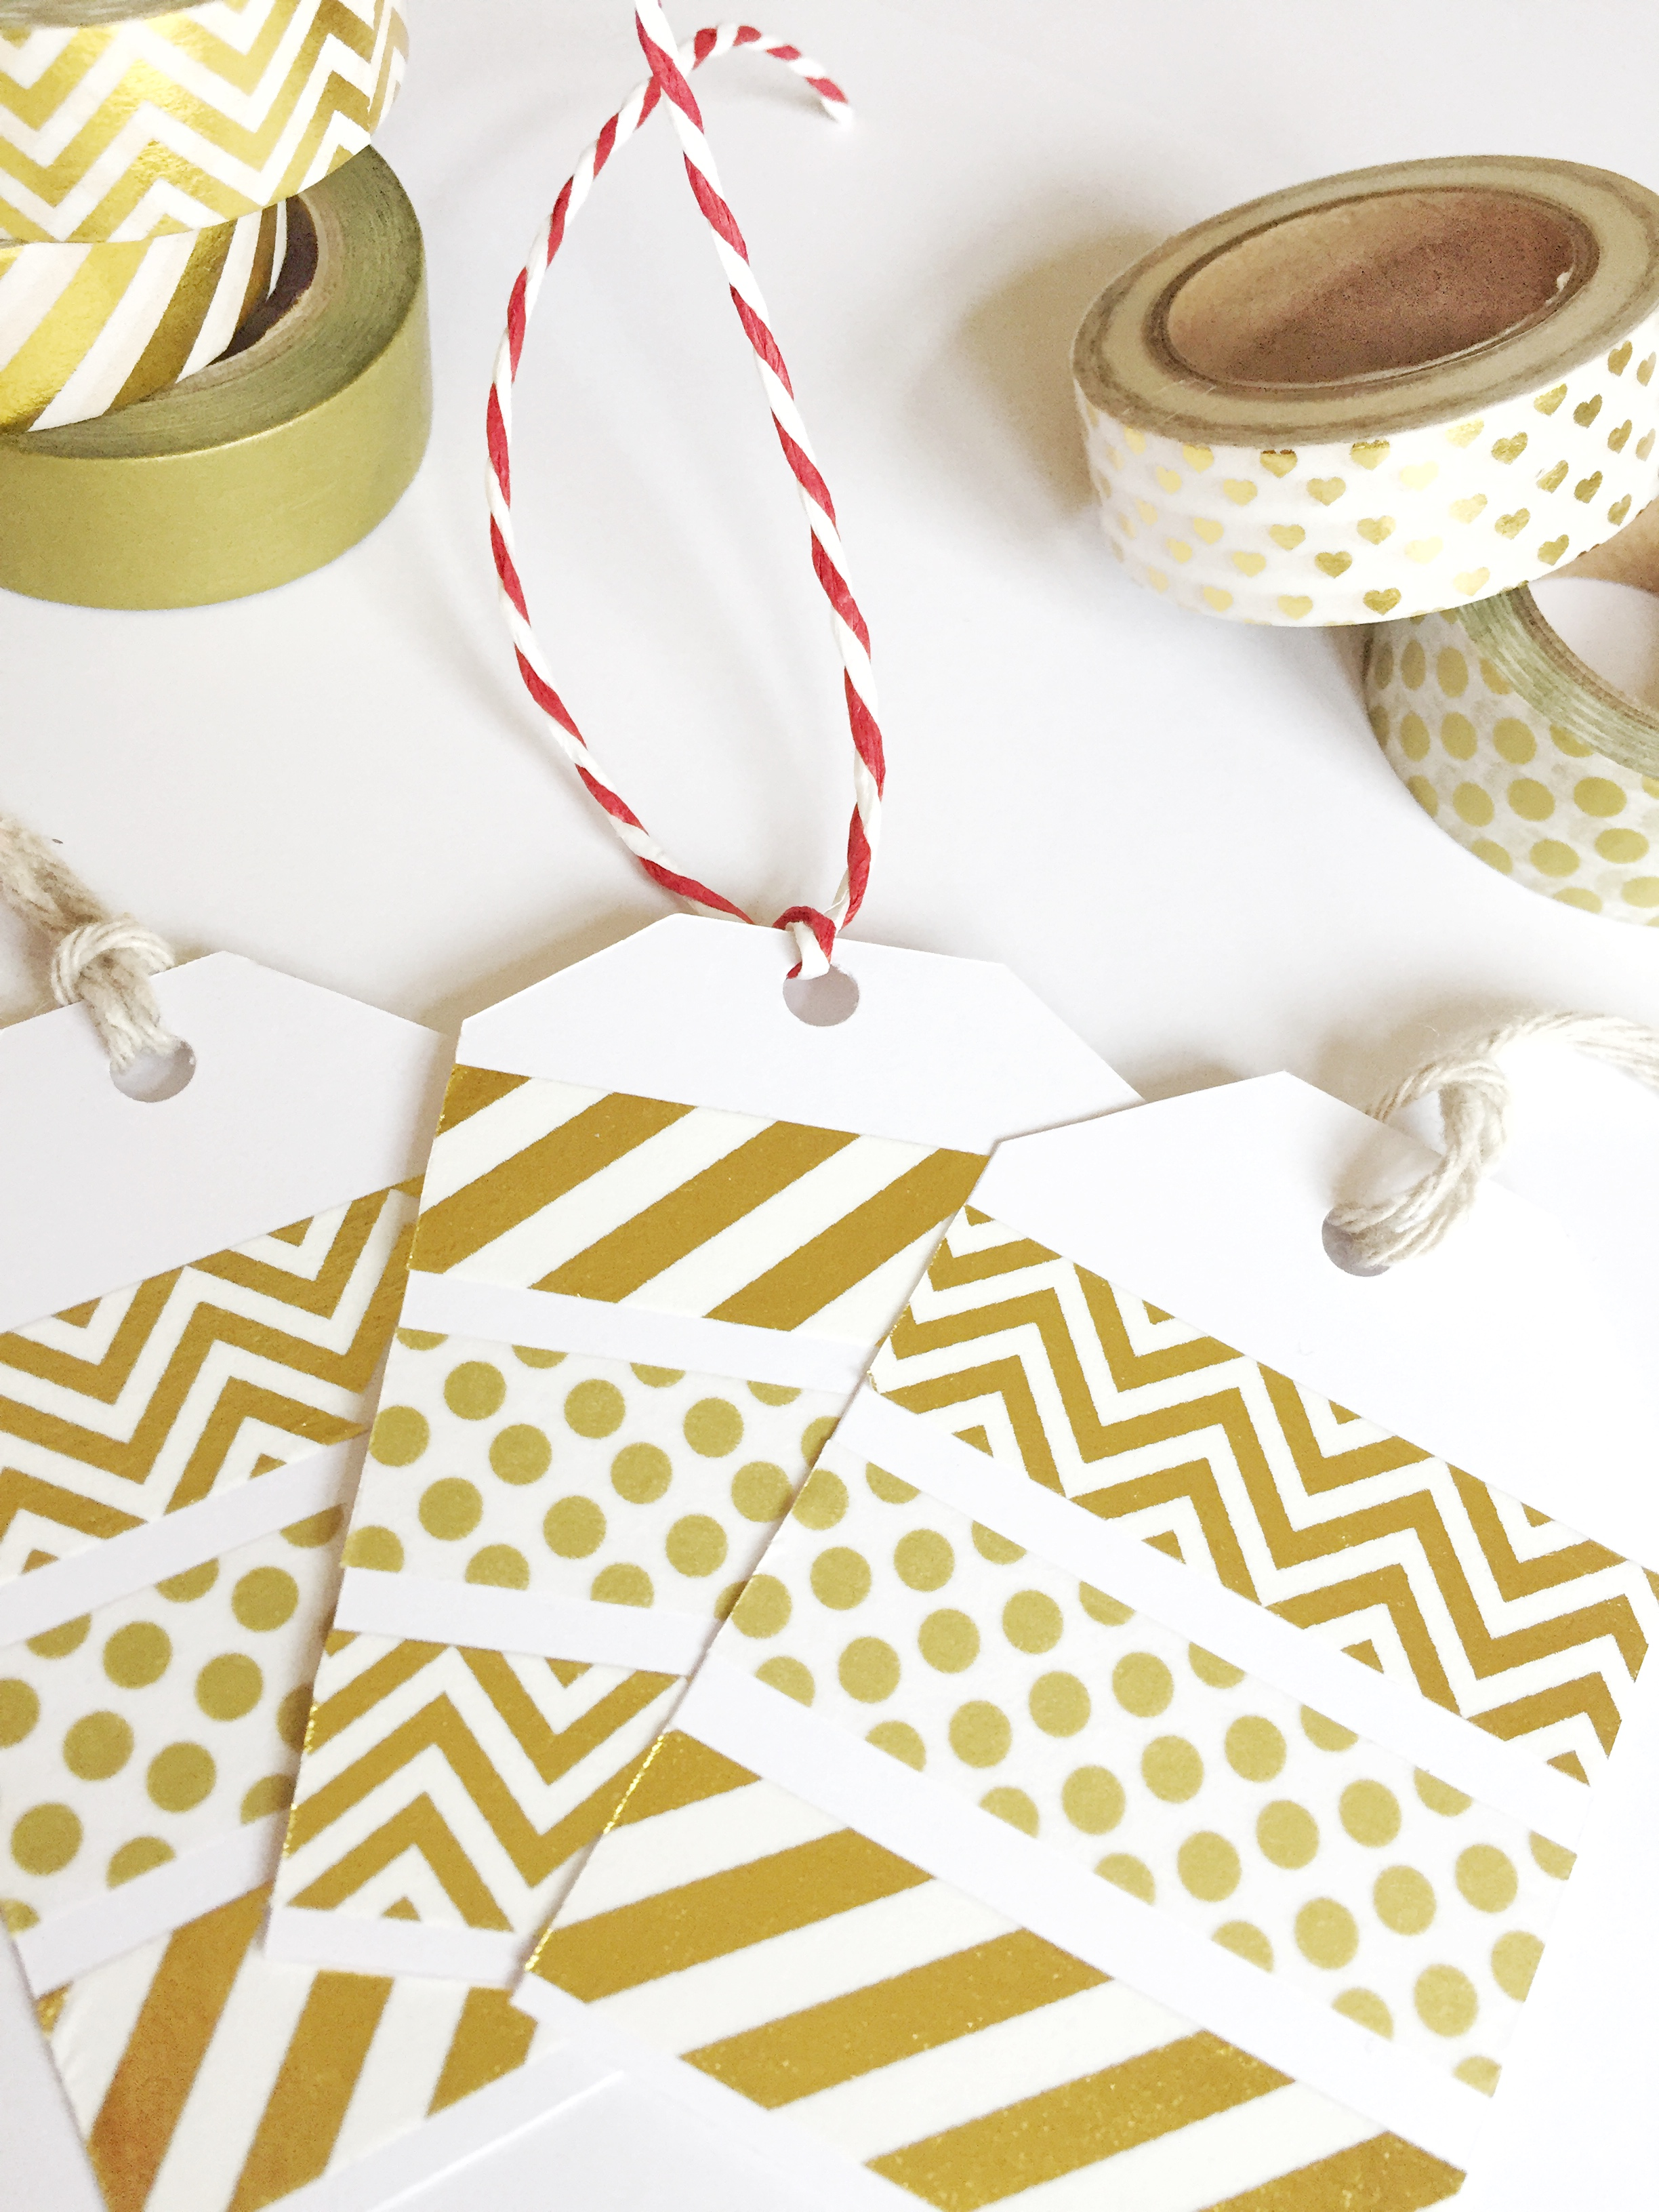 What's the craze with Washi Tape?